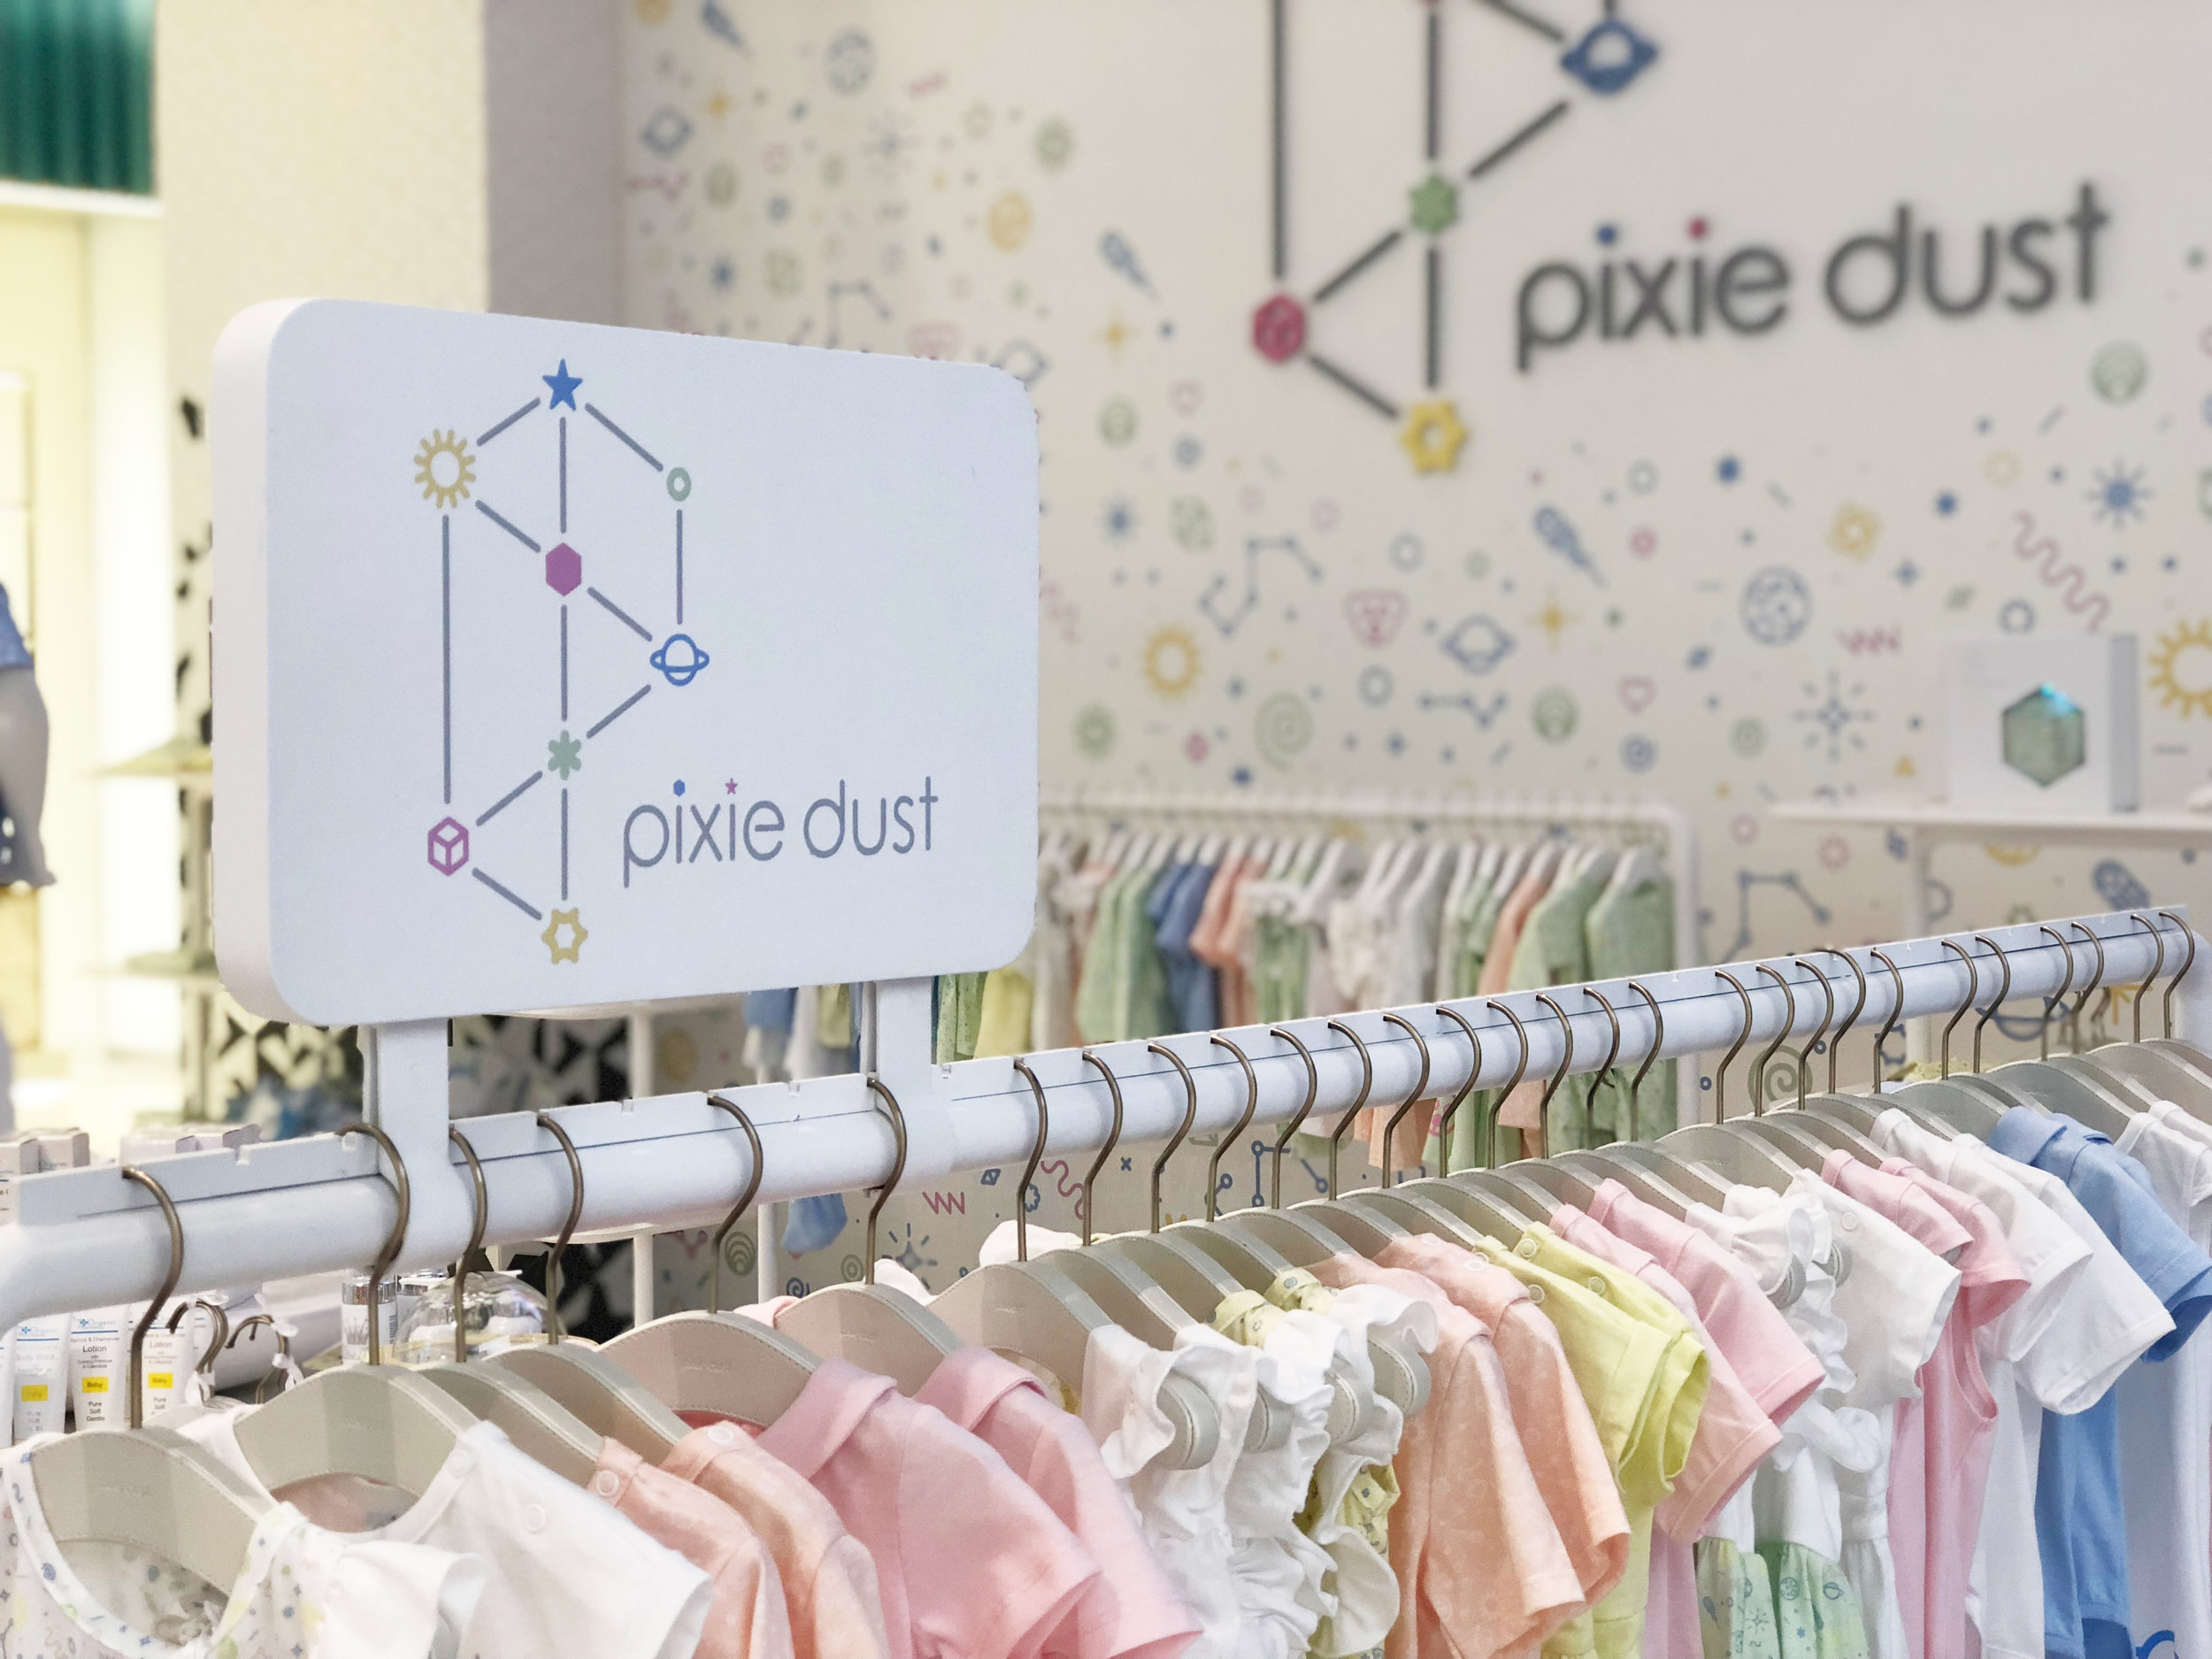 Kalian_Branding_Pixie_Dust_Shop.jpg